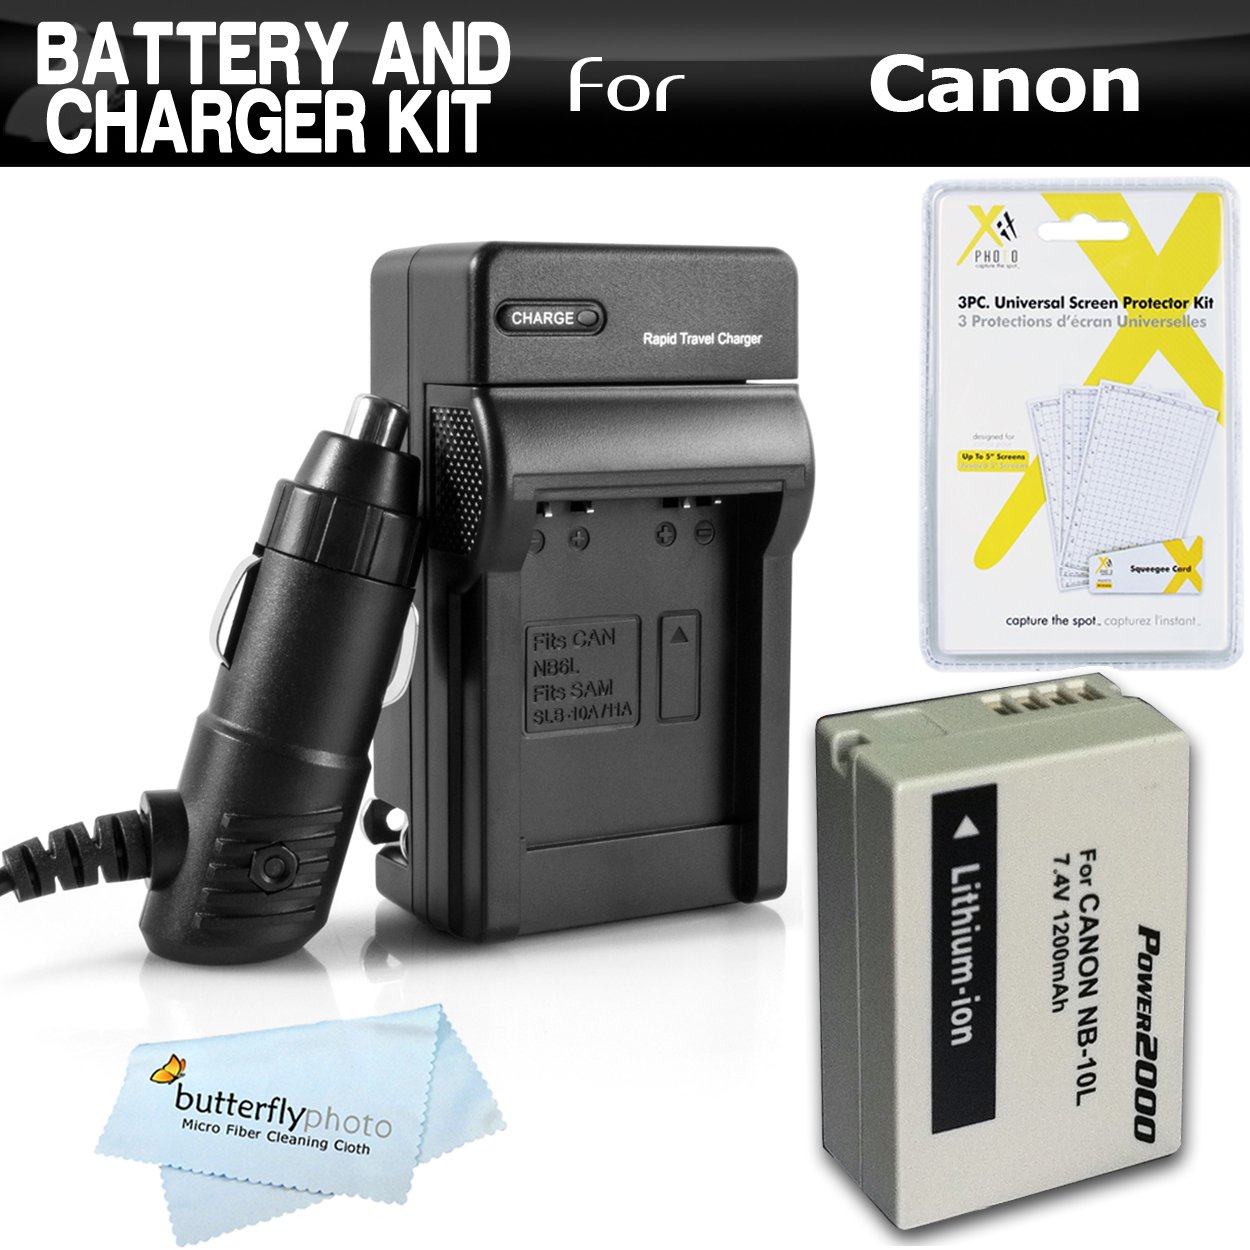 Battery And Charger Kit For Canon PowerShot SX40 HS, G1 X, G1X, SX50 HS, SX50HS, Powershot G15, G16, SX60 HS, SX60HS, G3 X Digital Camera Includes Extended Replacement (1200Mah) NB-10L Battery + More